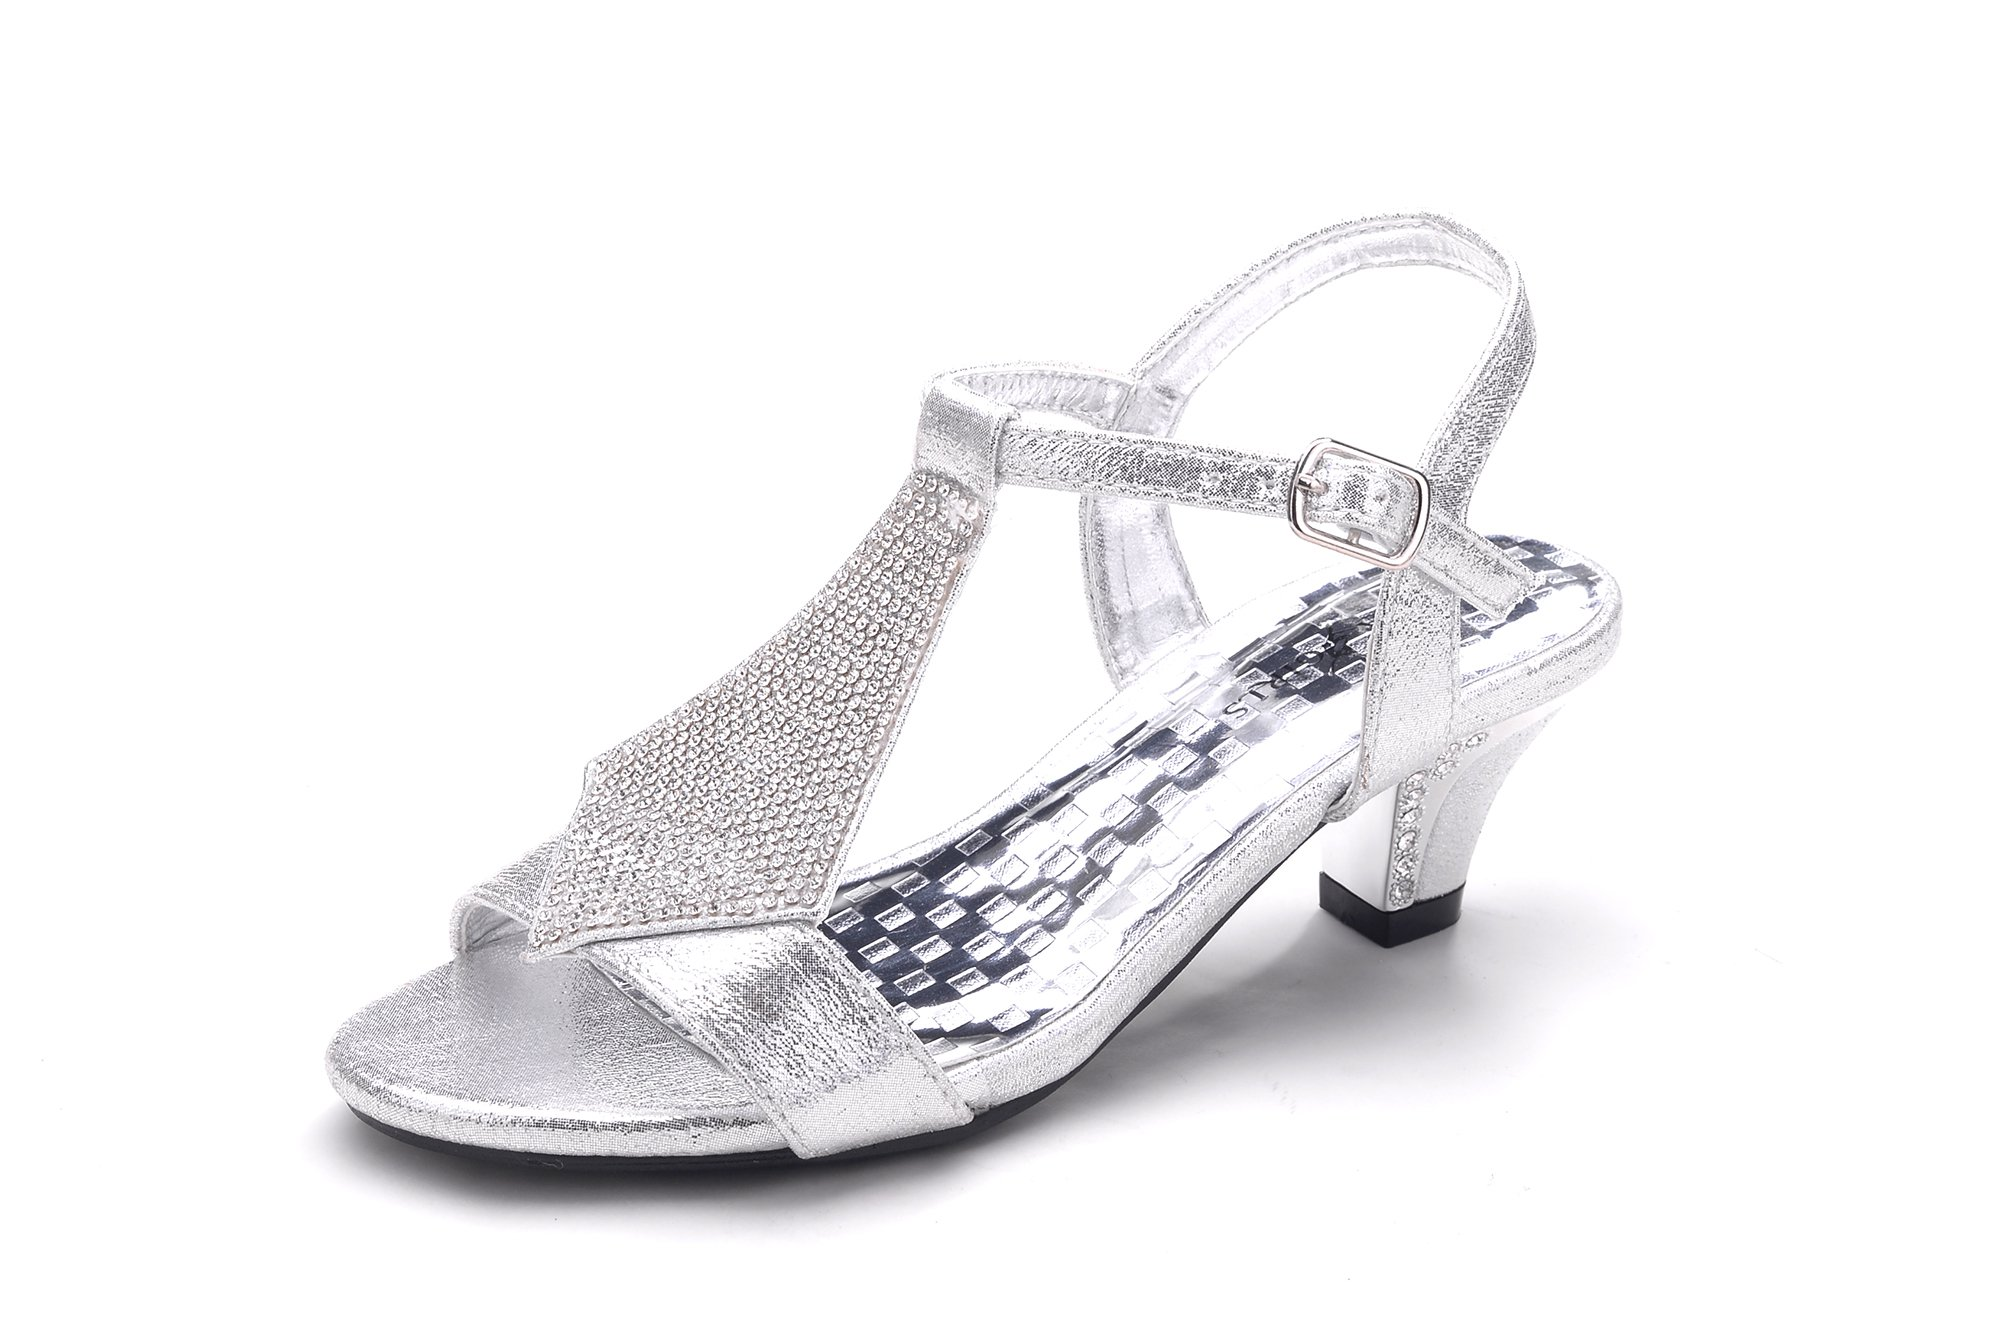 Sparkle Little Girl's Rhinestone Dress Little Heel Party Shoes (CK80) SILVER12 by Greens (Image #1)